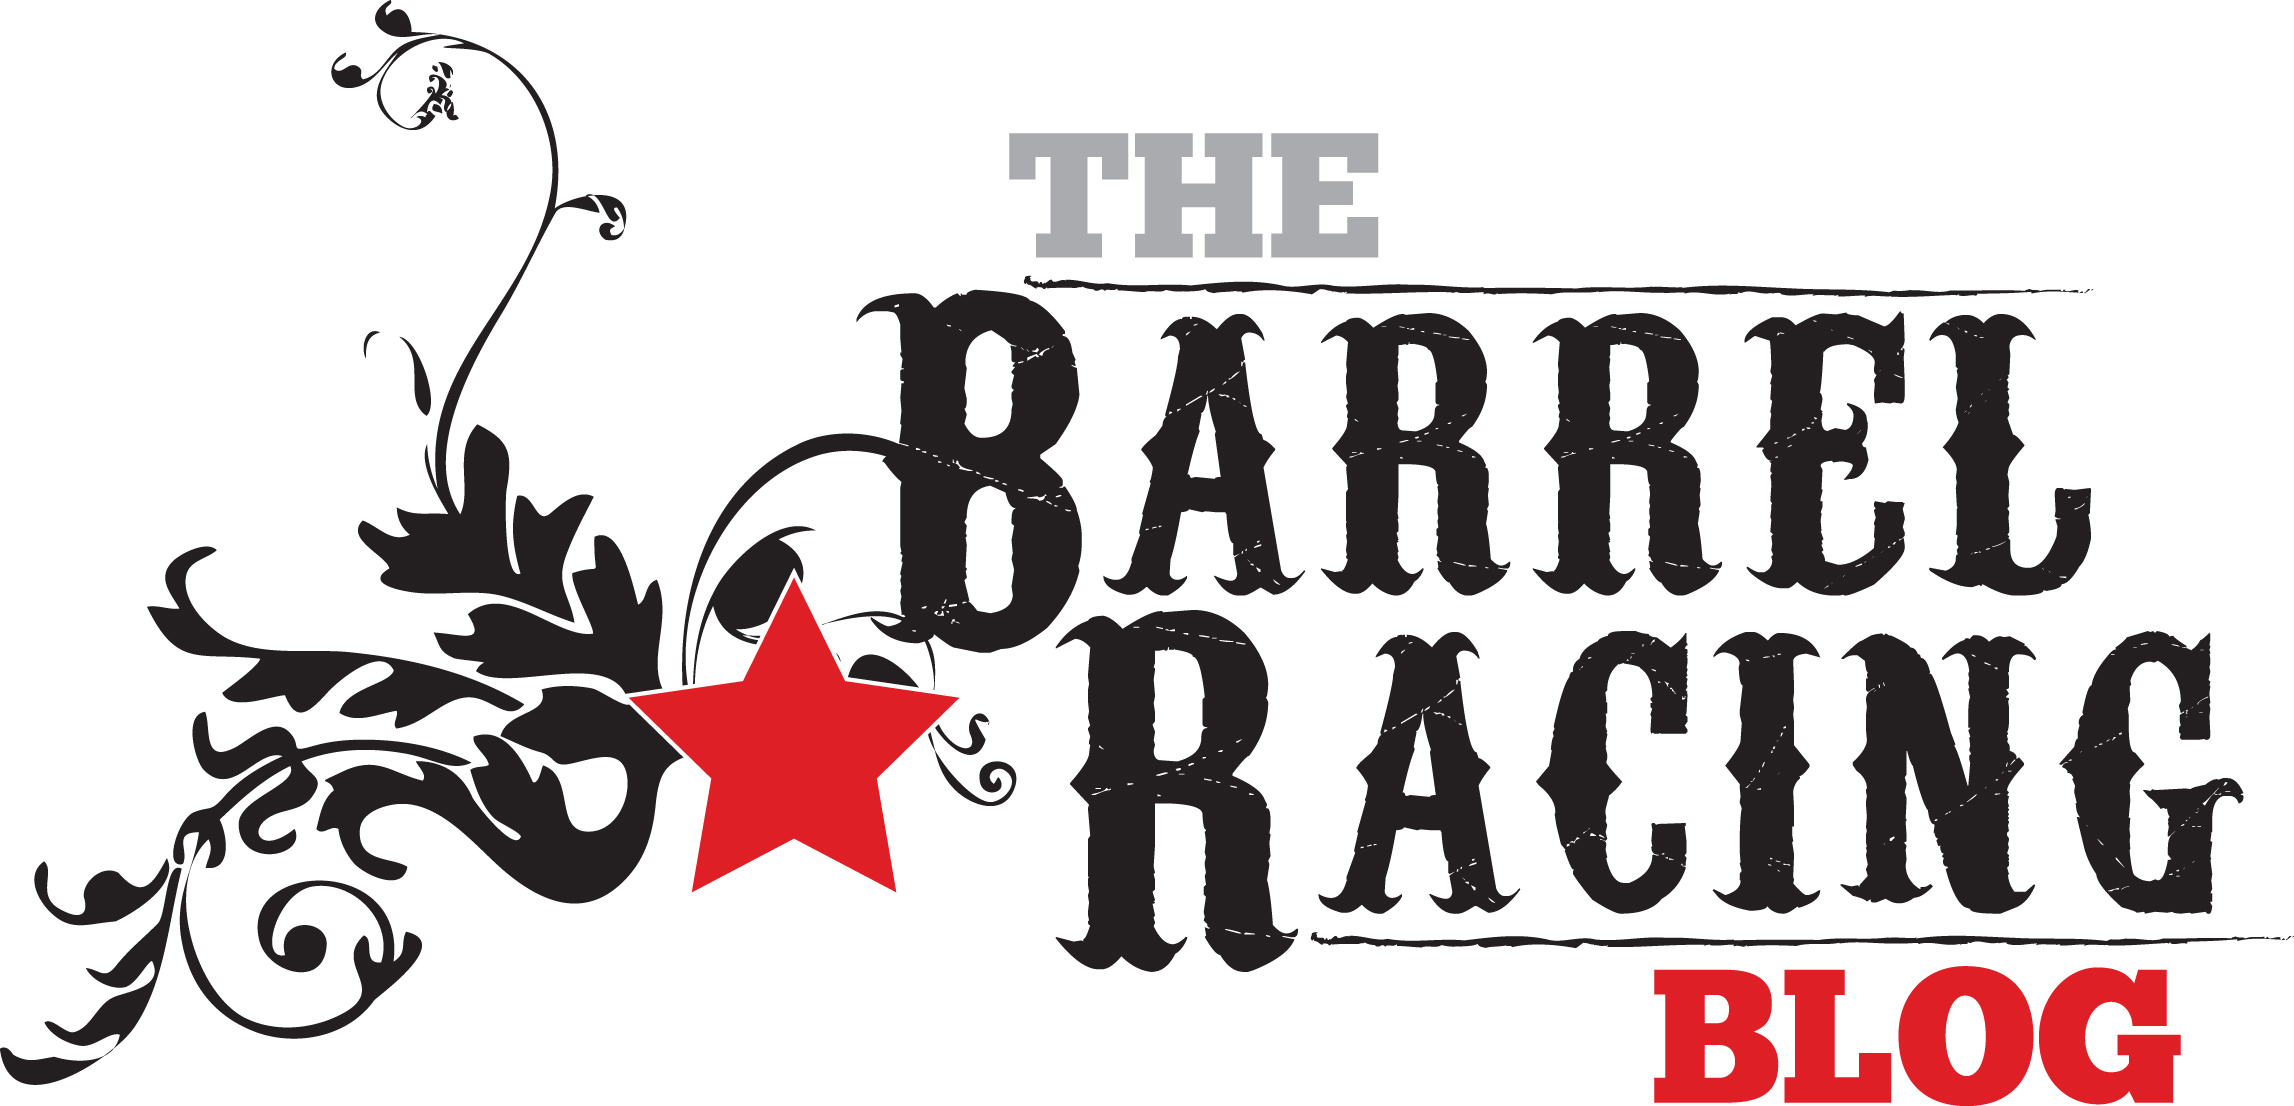 quarter horse the barrel racing blog page 8 rh thebarrelracingblog wordpress com barrel racing logo pictures